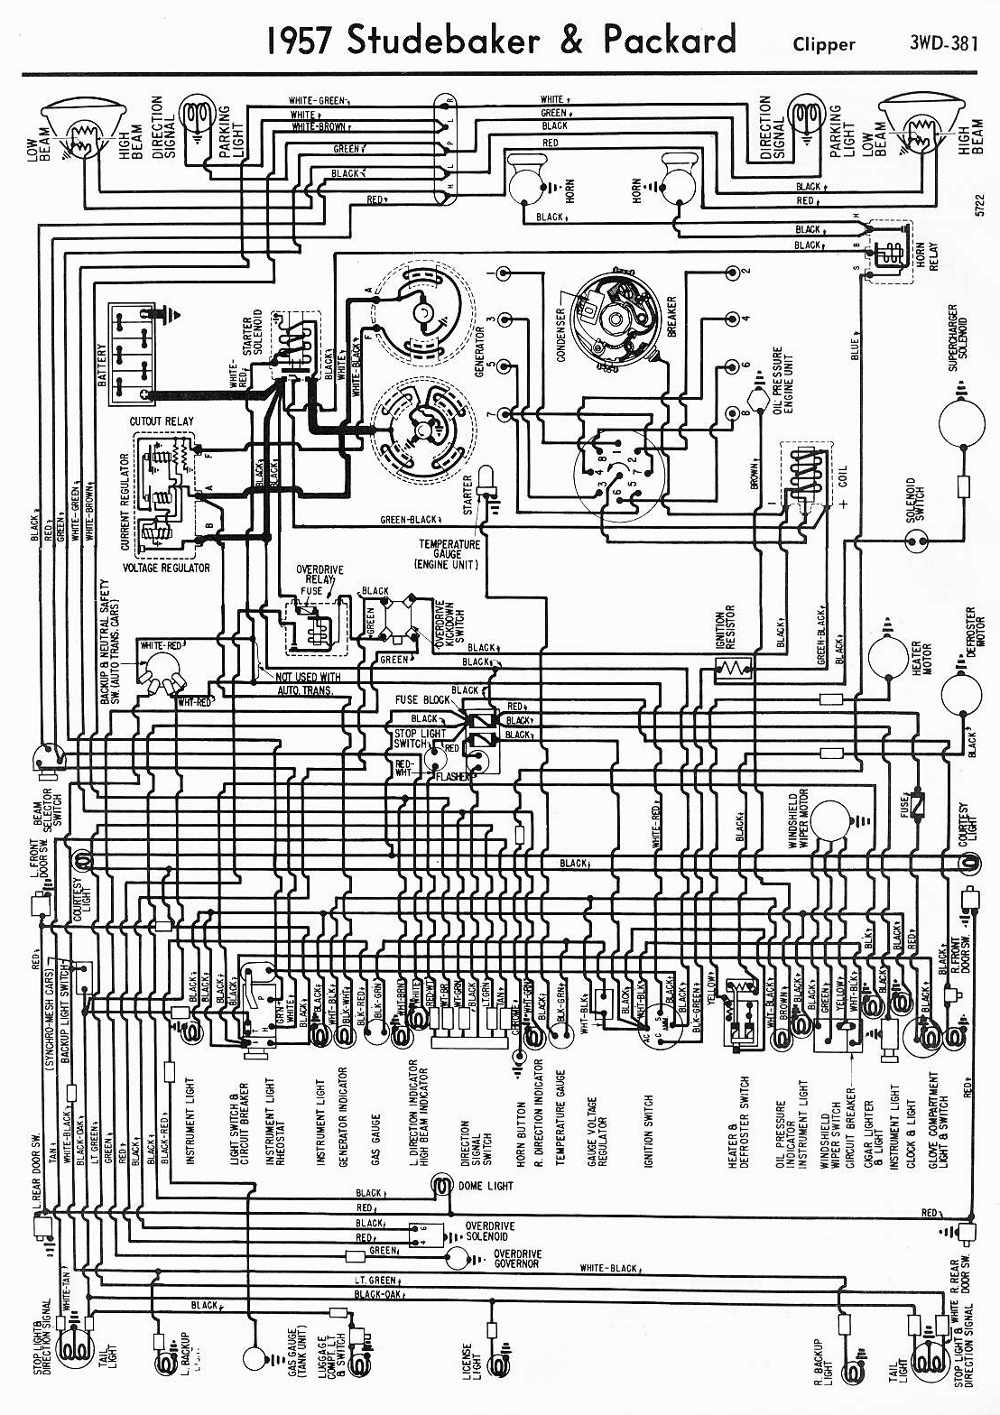 1948 packard wiring diagram wiring diagram pictures u2022 rh mapavick co uk 1959 studebaker pickup wiring [ 1000 x 1415 Pixel ]